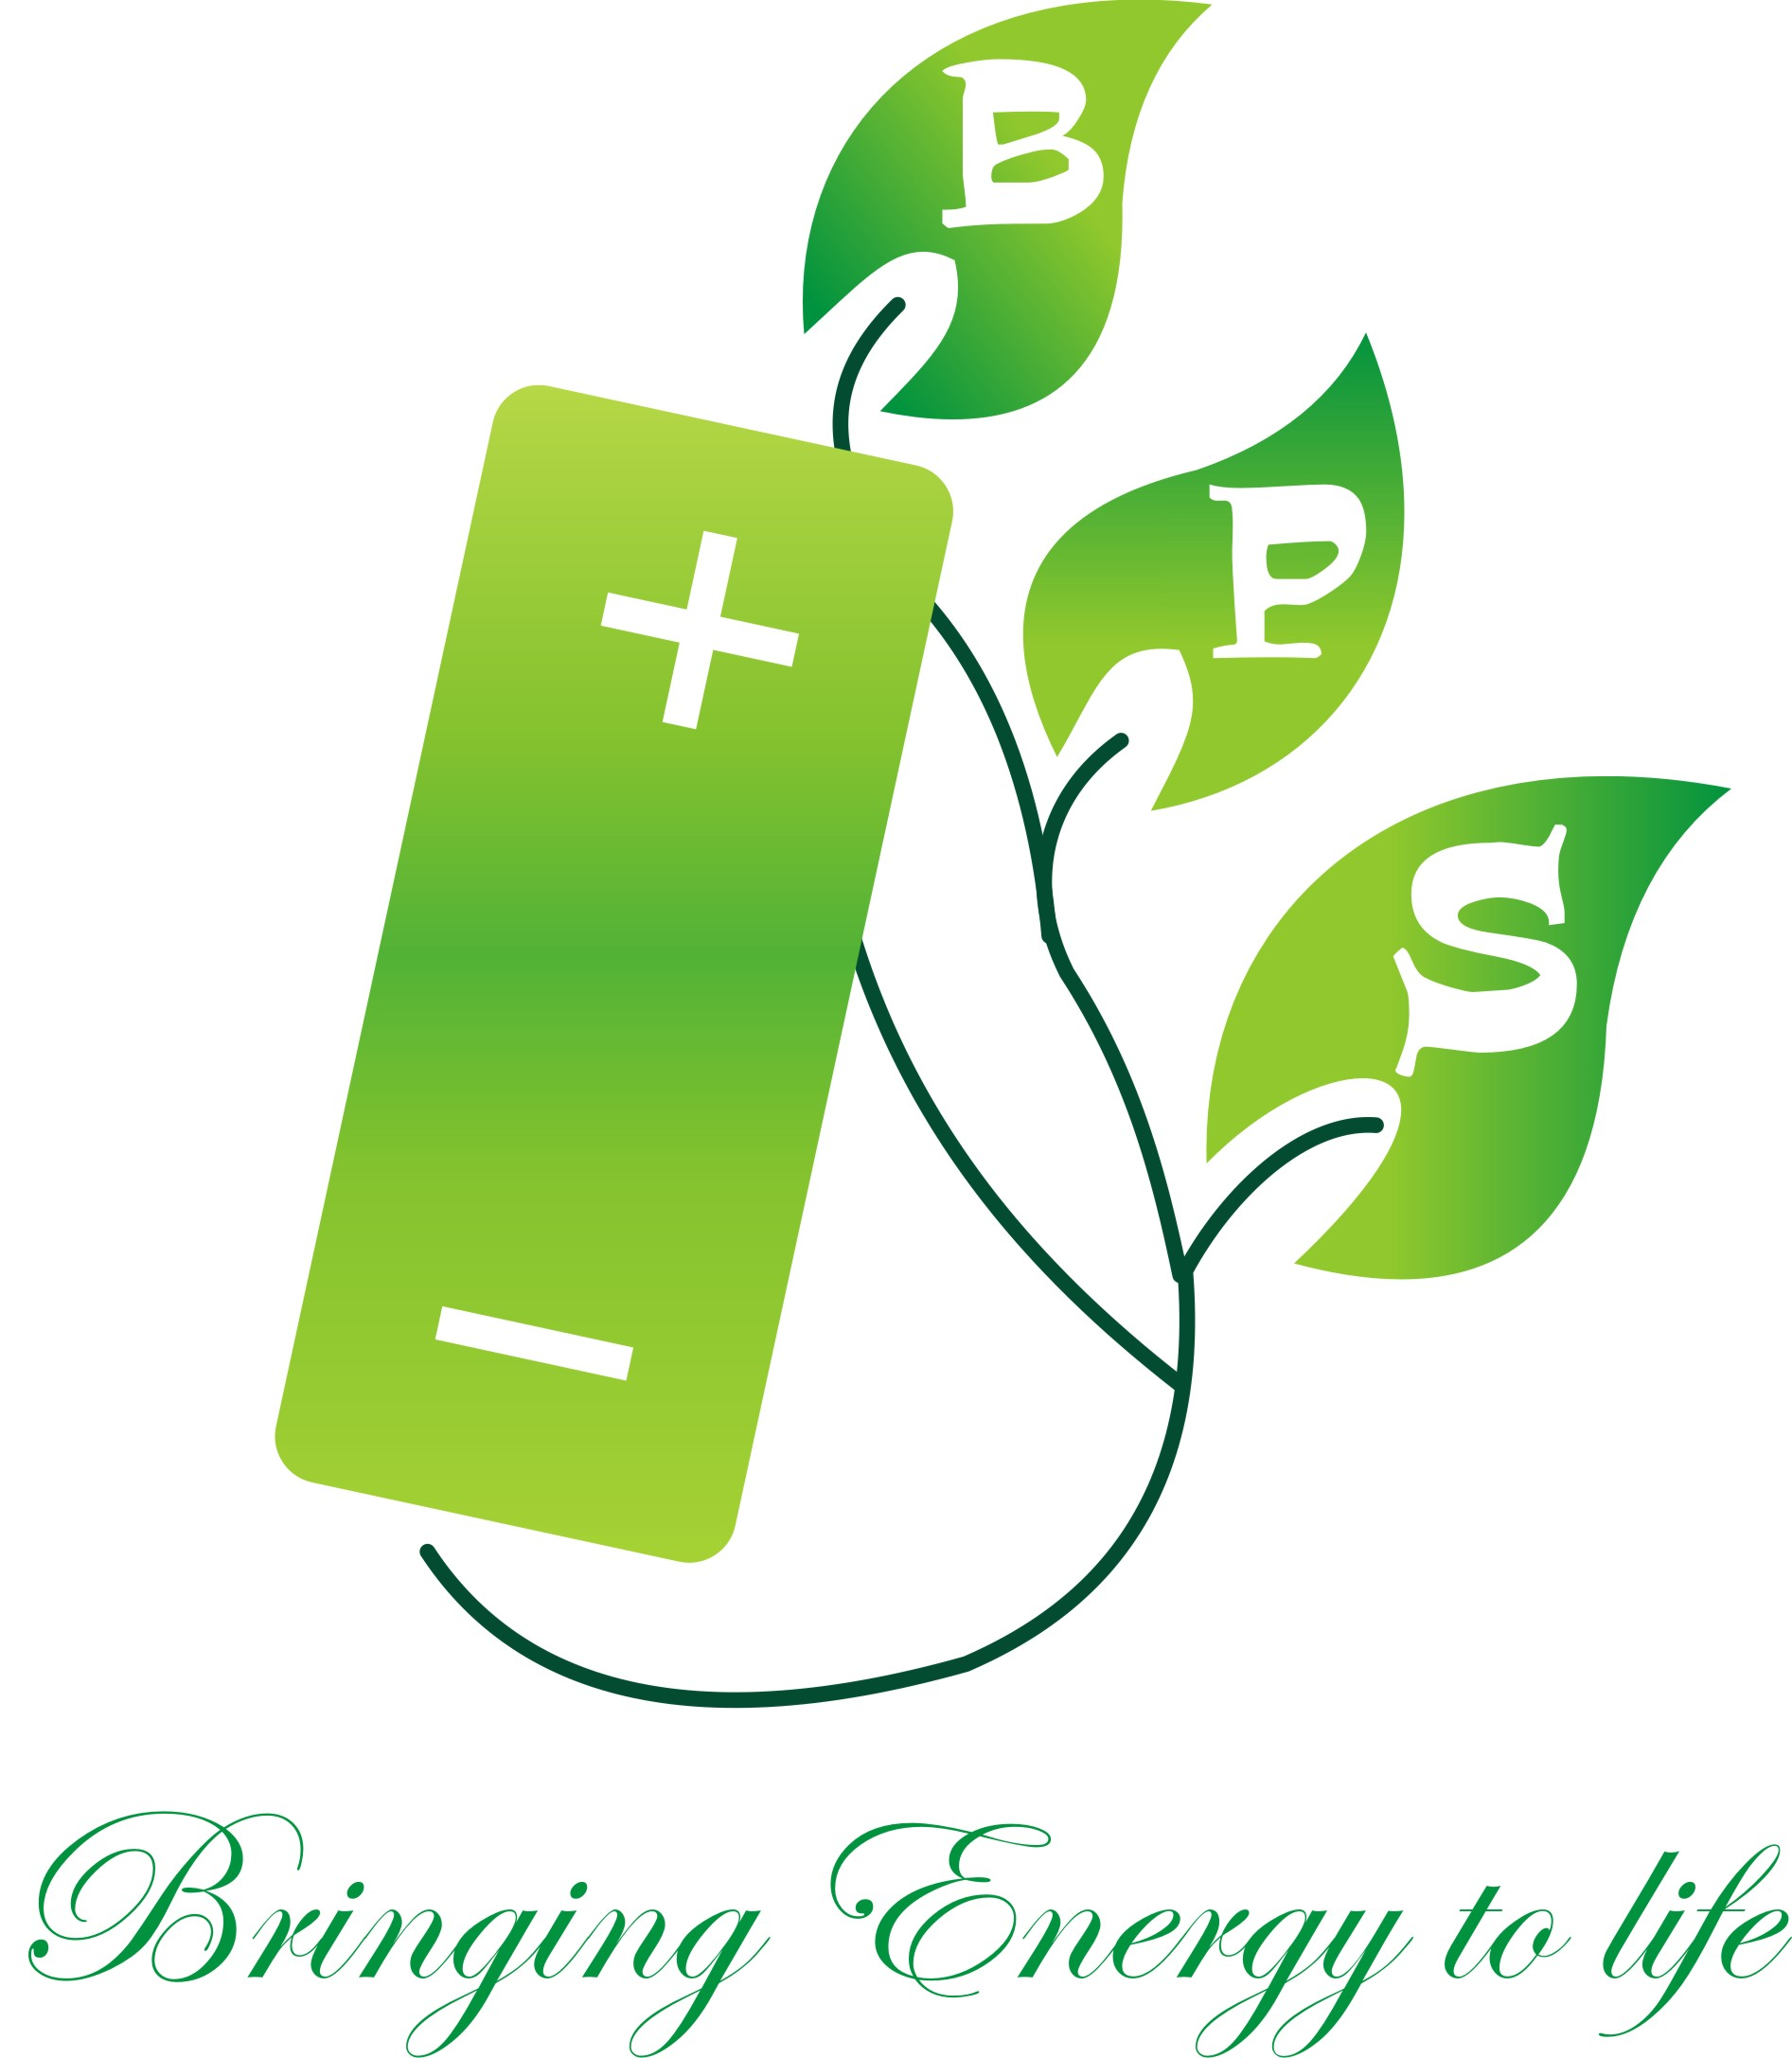 Bharat power solutions - logo